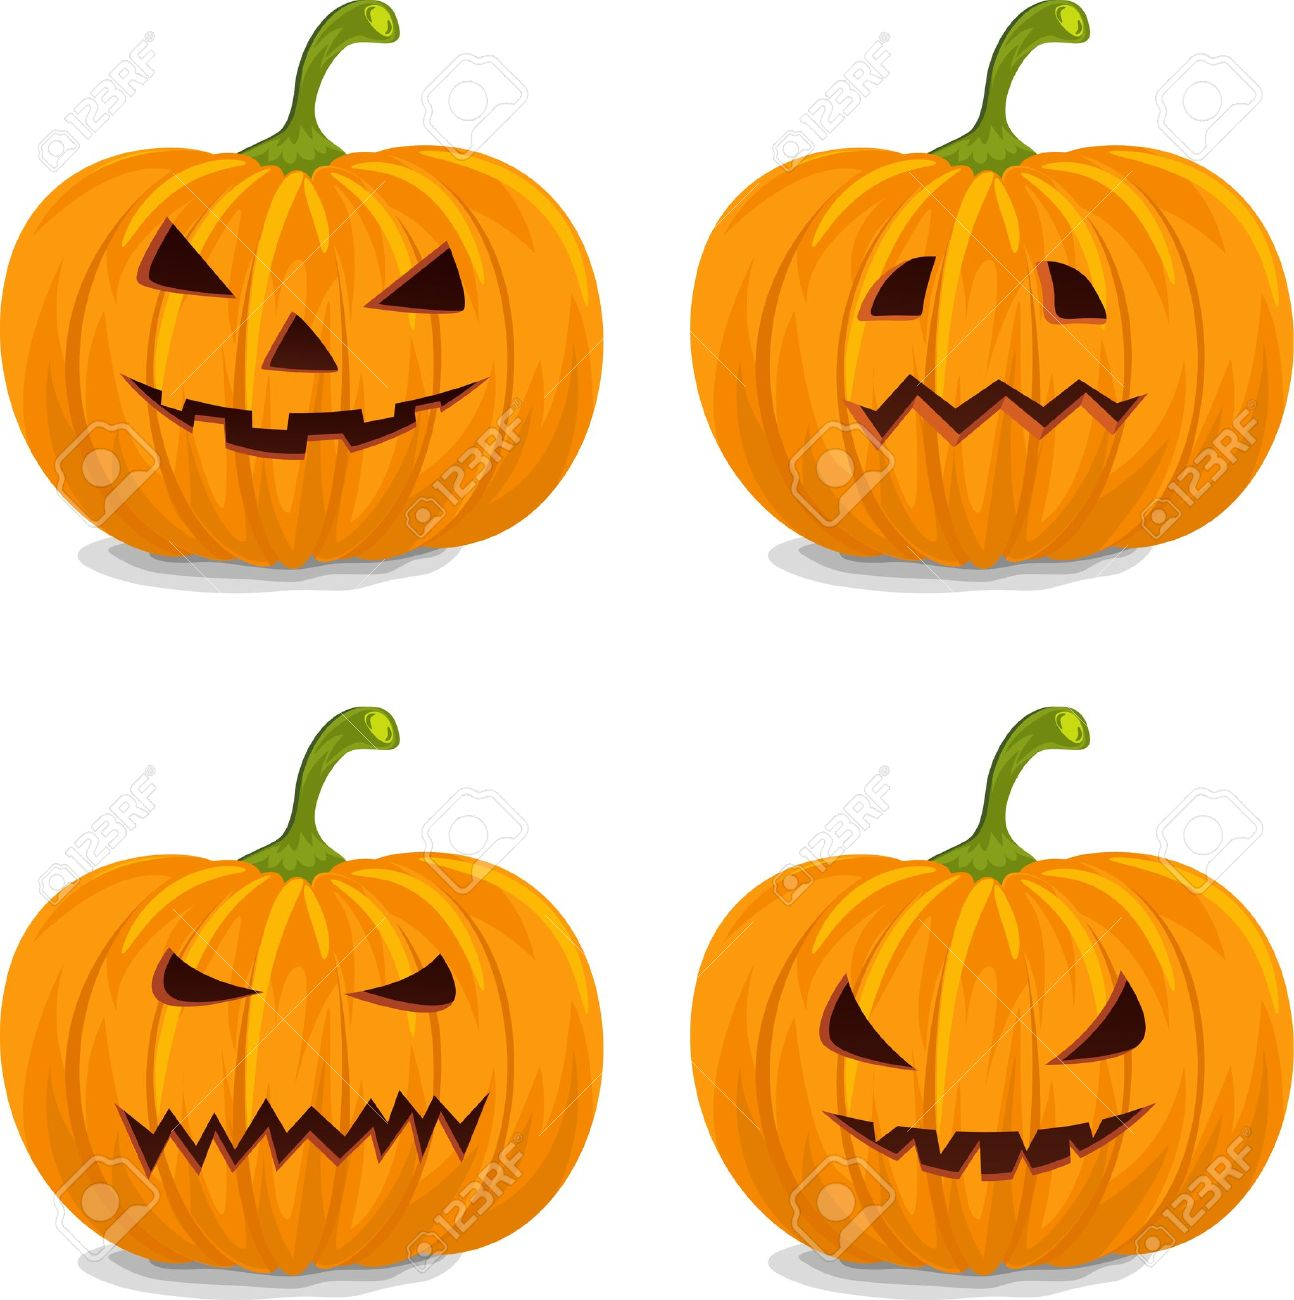 Four Style Decorative Yellow Pumpkins For Halloween. Royalty Free.